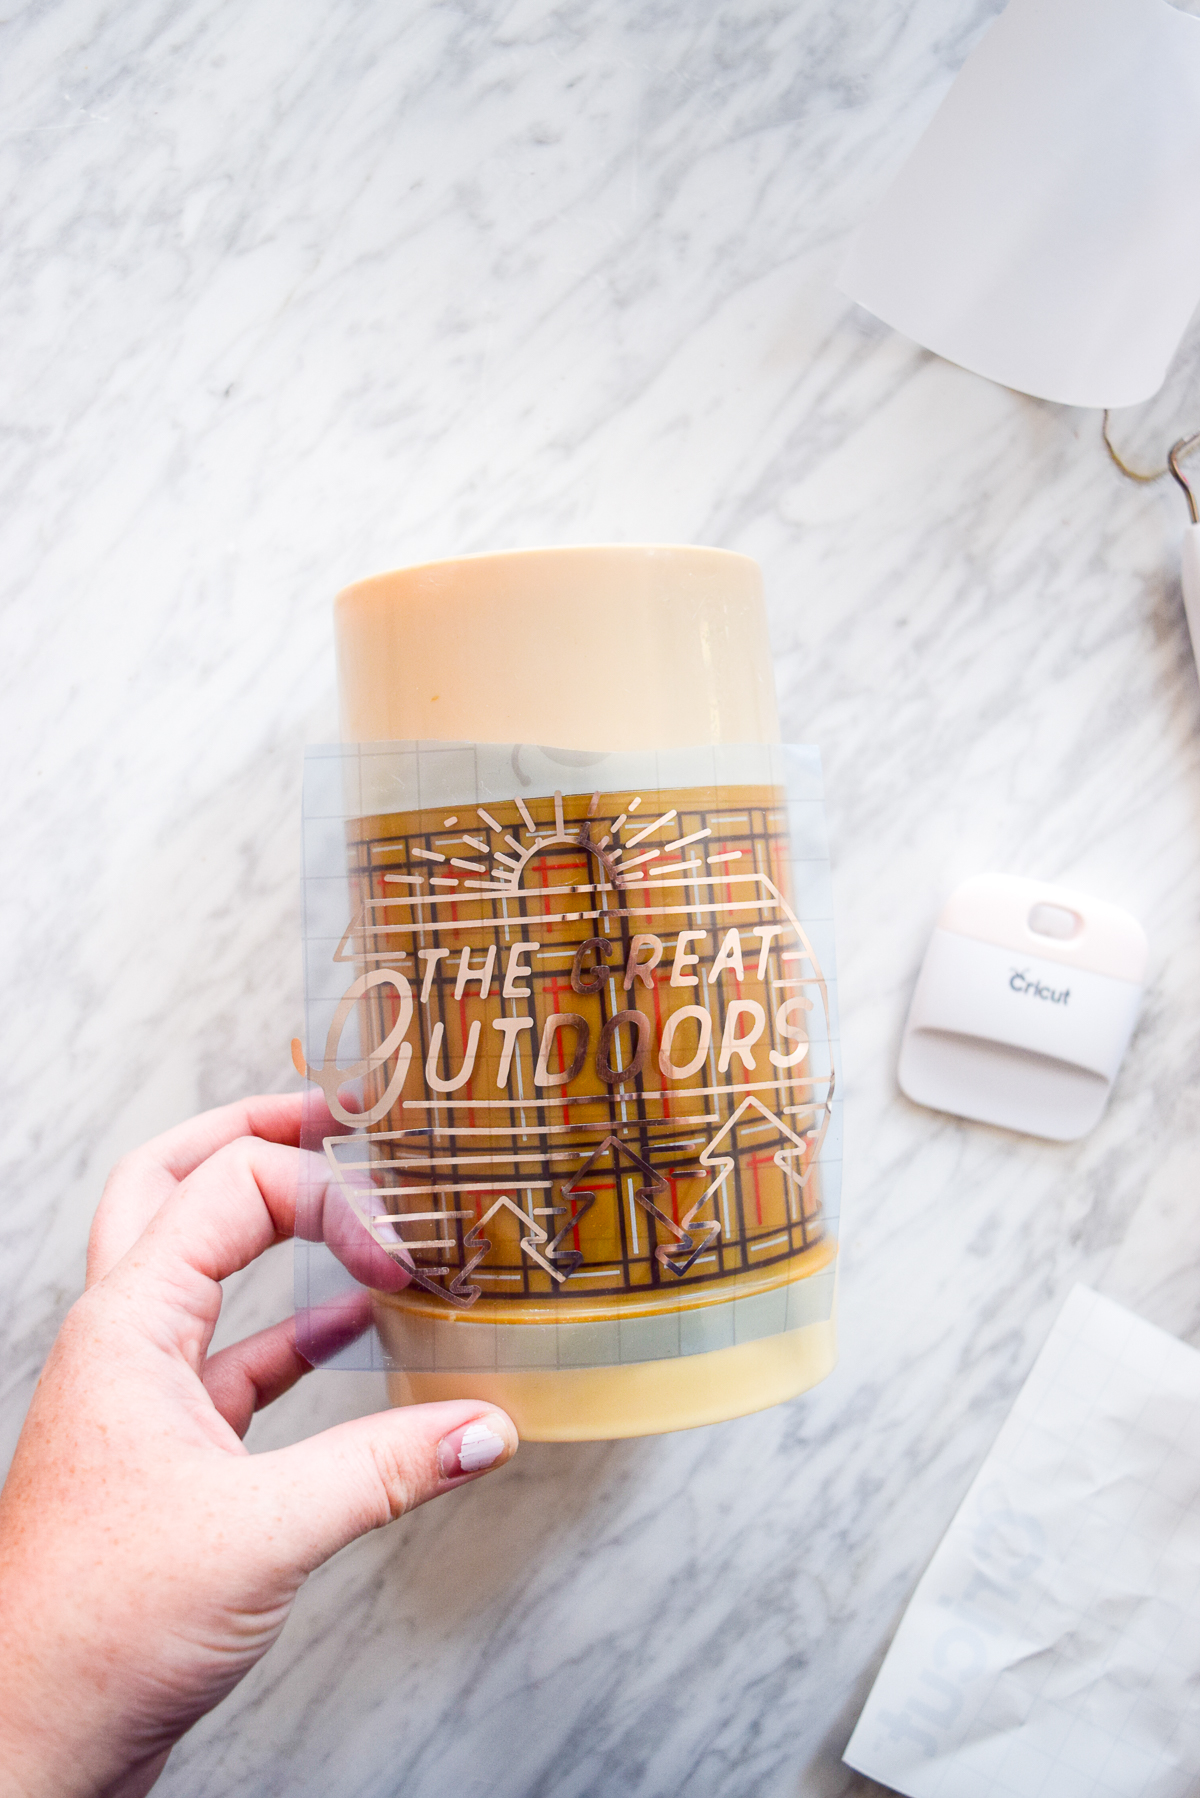 applying a vinyl decal using transfer tape to a thermos